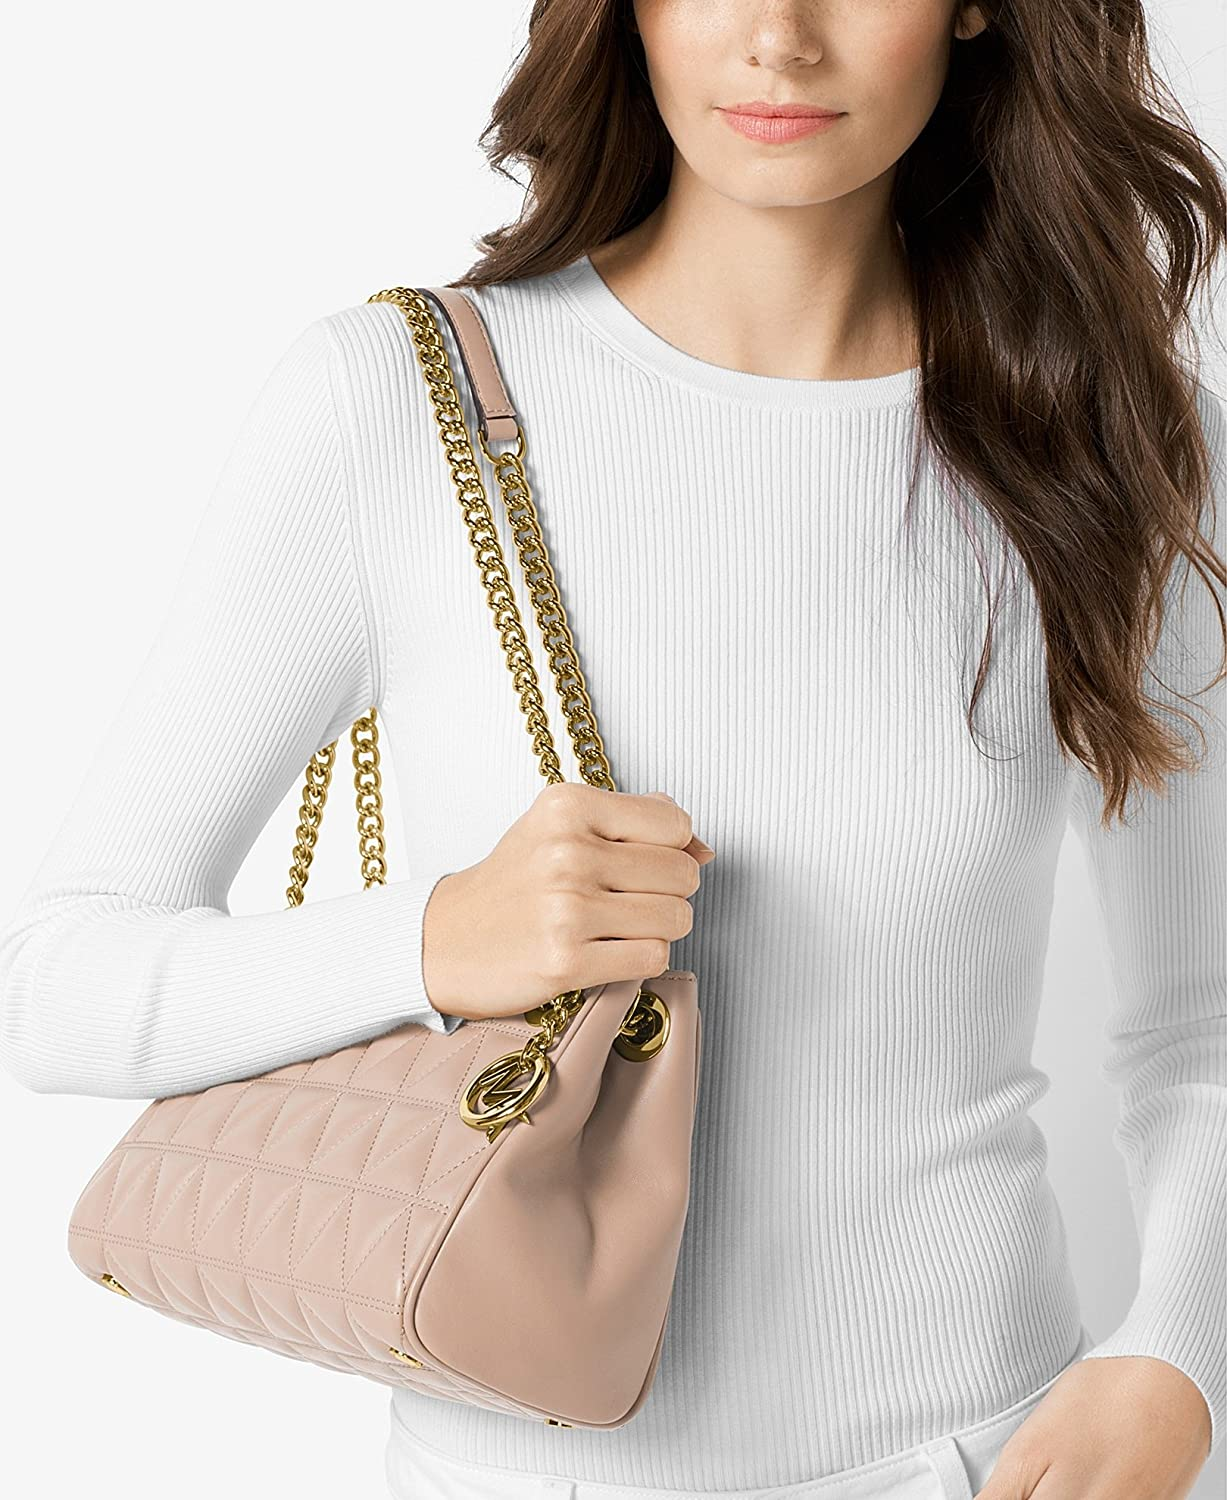 450de93b1ffb MICHAEL KORS Scarlett Quilted Leather Shoulder Bag in Soft PInk: Handbags:  Amazon.com